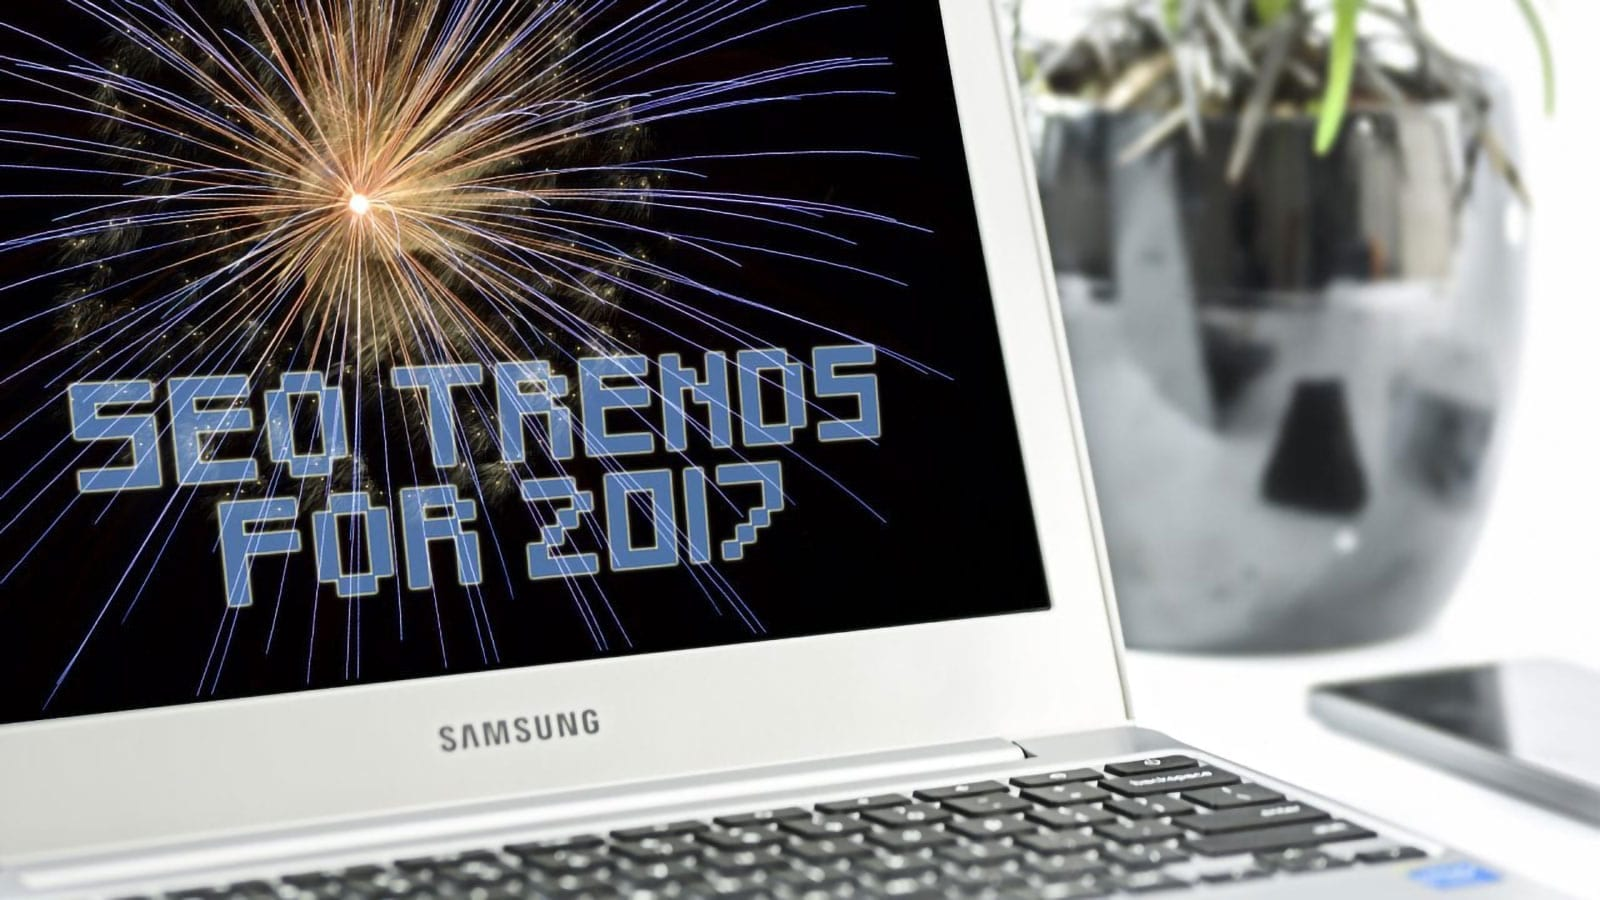 Top 5 SEO Trends for 2017